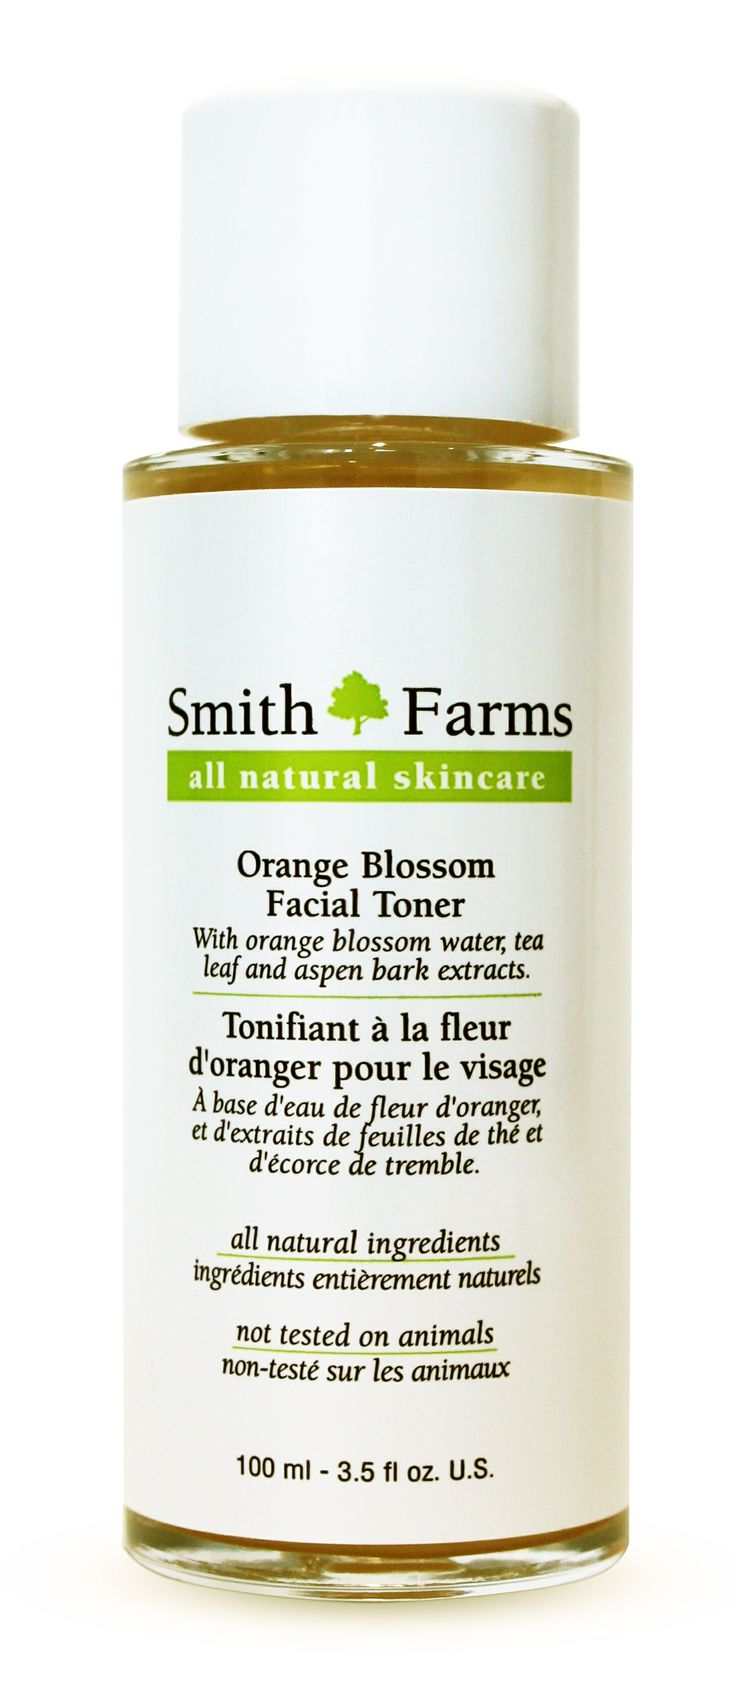 Orange Blossom Facial Toner Refreshing and lightly cleansing, this toner balances the skin without over drying it. Orange blossom water and witch hazel freshen and tone the skin, while aloe vera soothes it. Aspen bark extract helps calm inflammation while extracts of gingko biloba leaf, olive leaf, green, white and rooibos tea leaf offer powerful antioxidant action to heal and protect the skin.